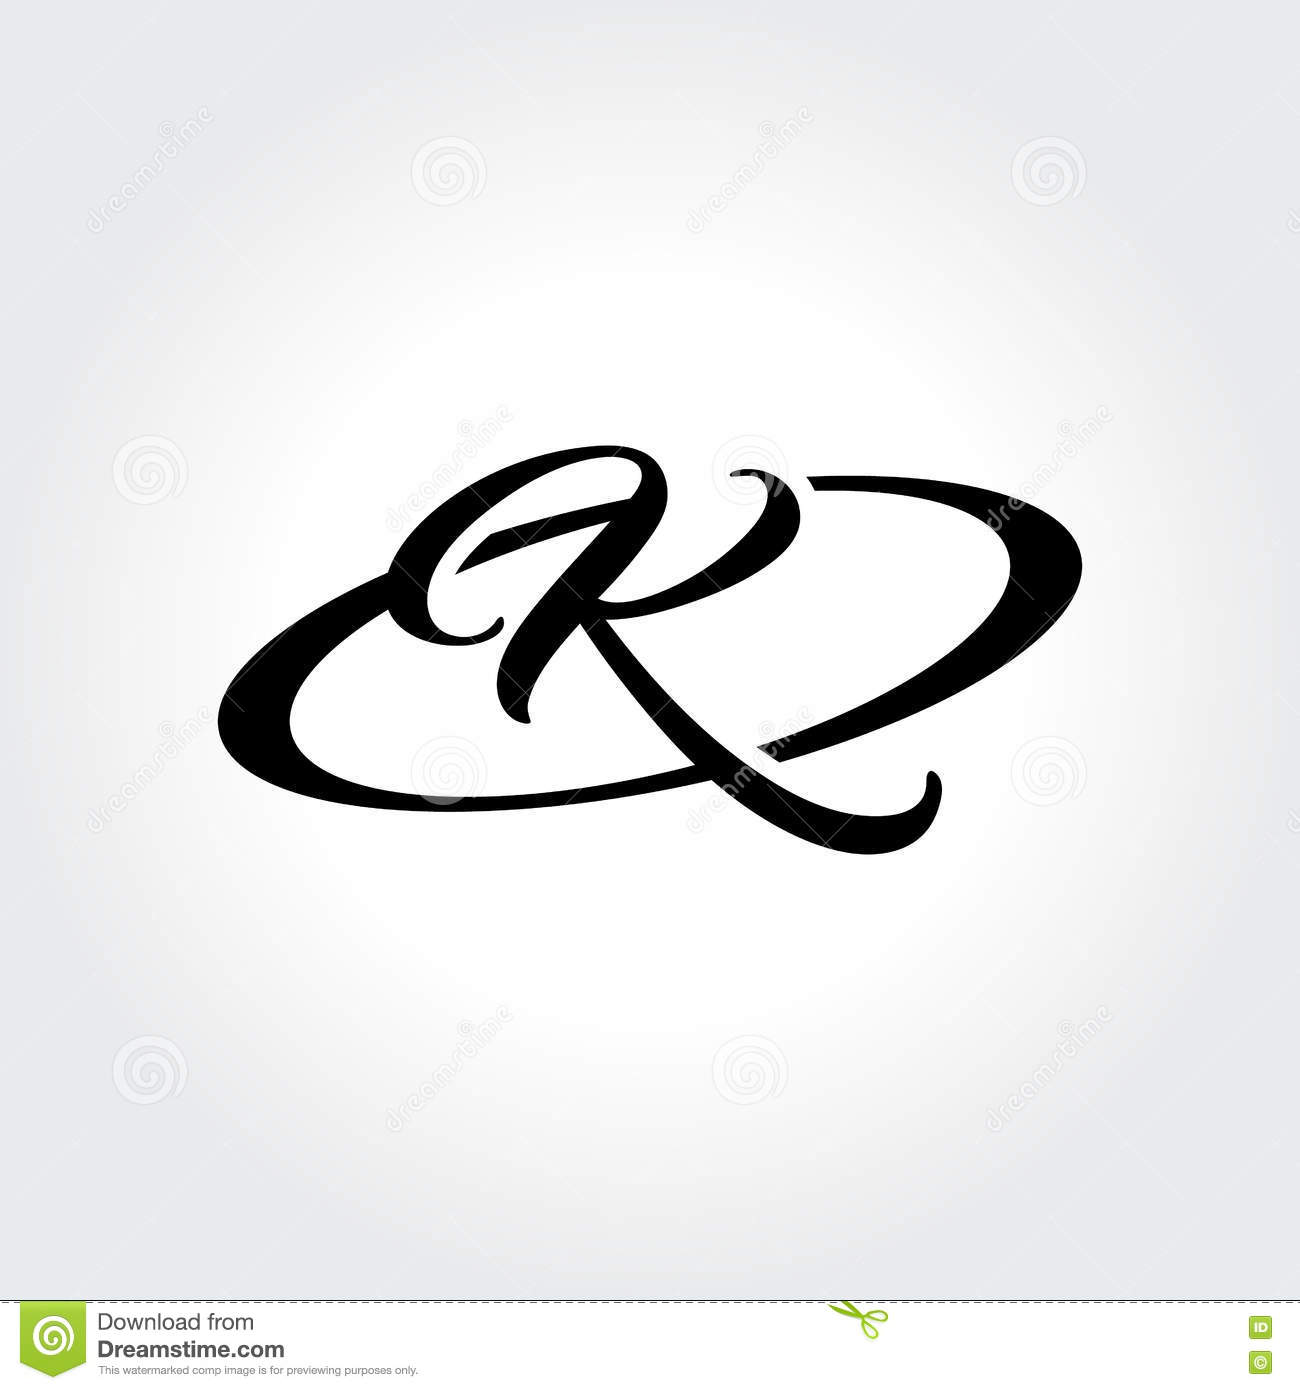 K Initial Symbol In Circle Creative Design Illustration